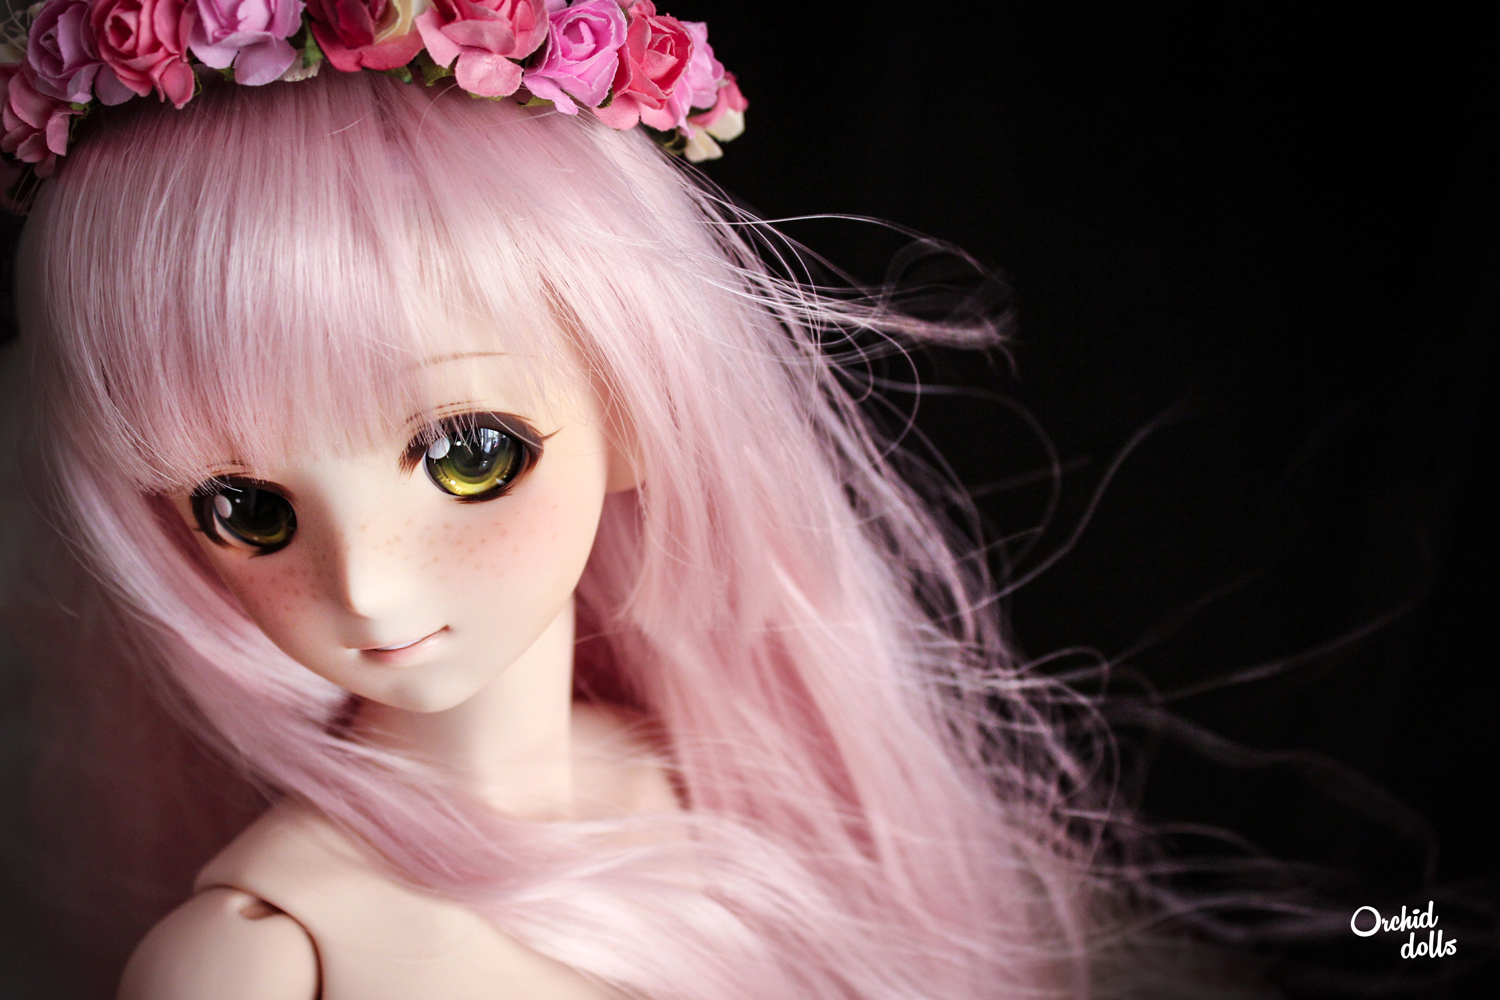 custom Dollfie Dream Melocotón M.O.M.O. pelo rosa